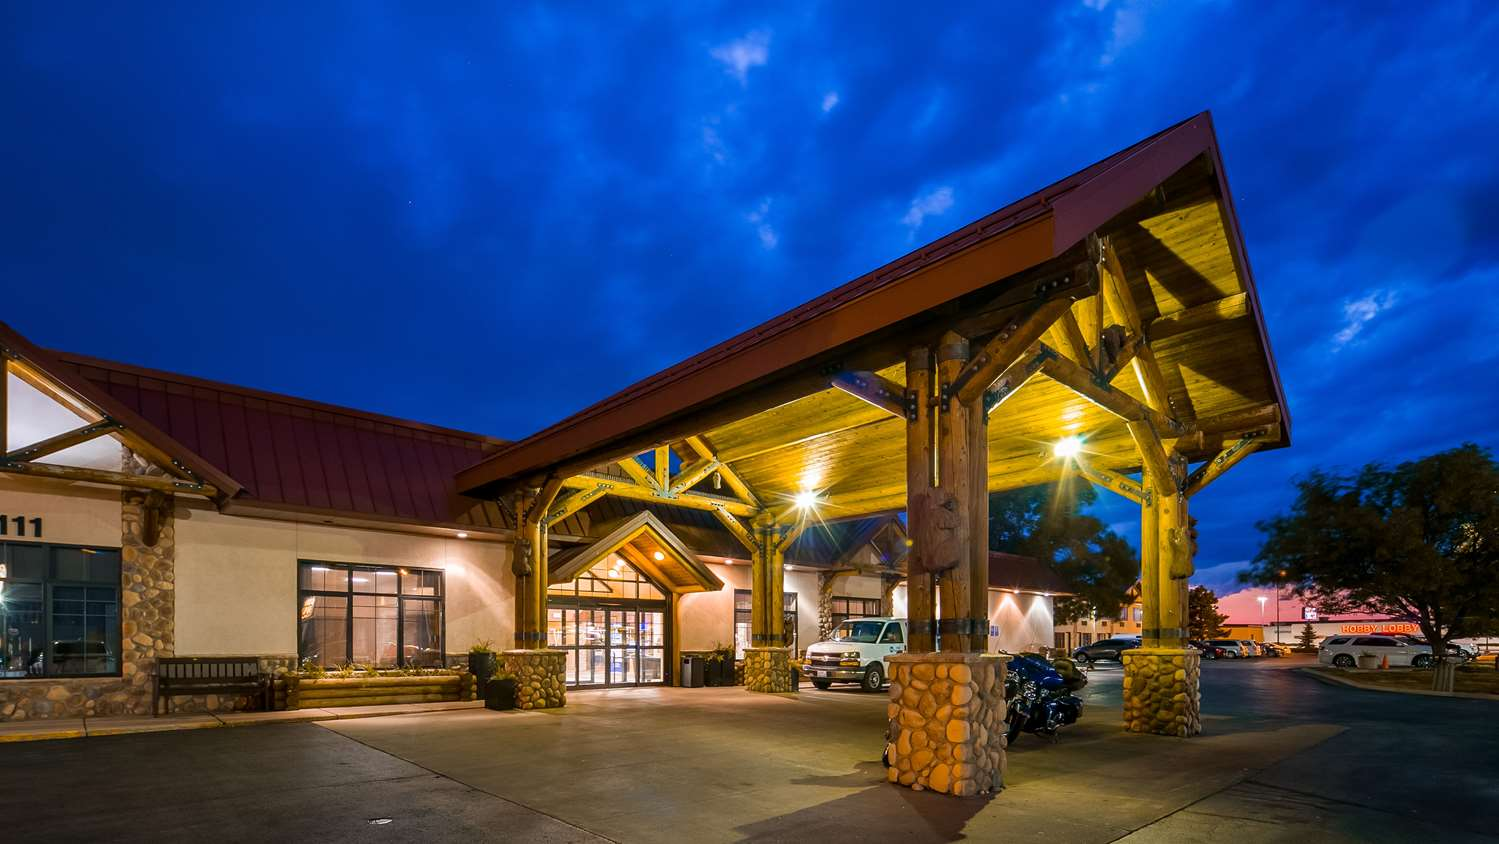 Best Western Ramkota Inn Rapid City